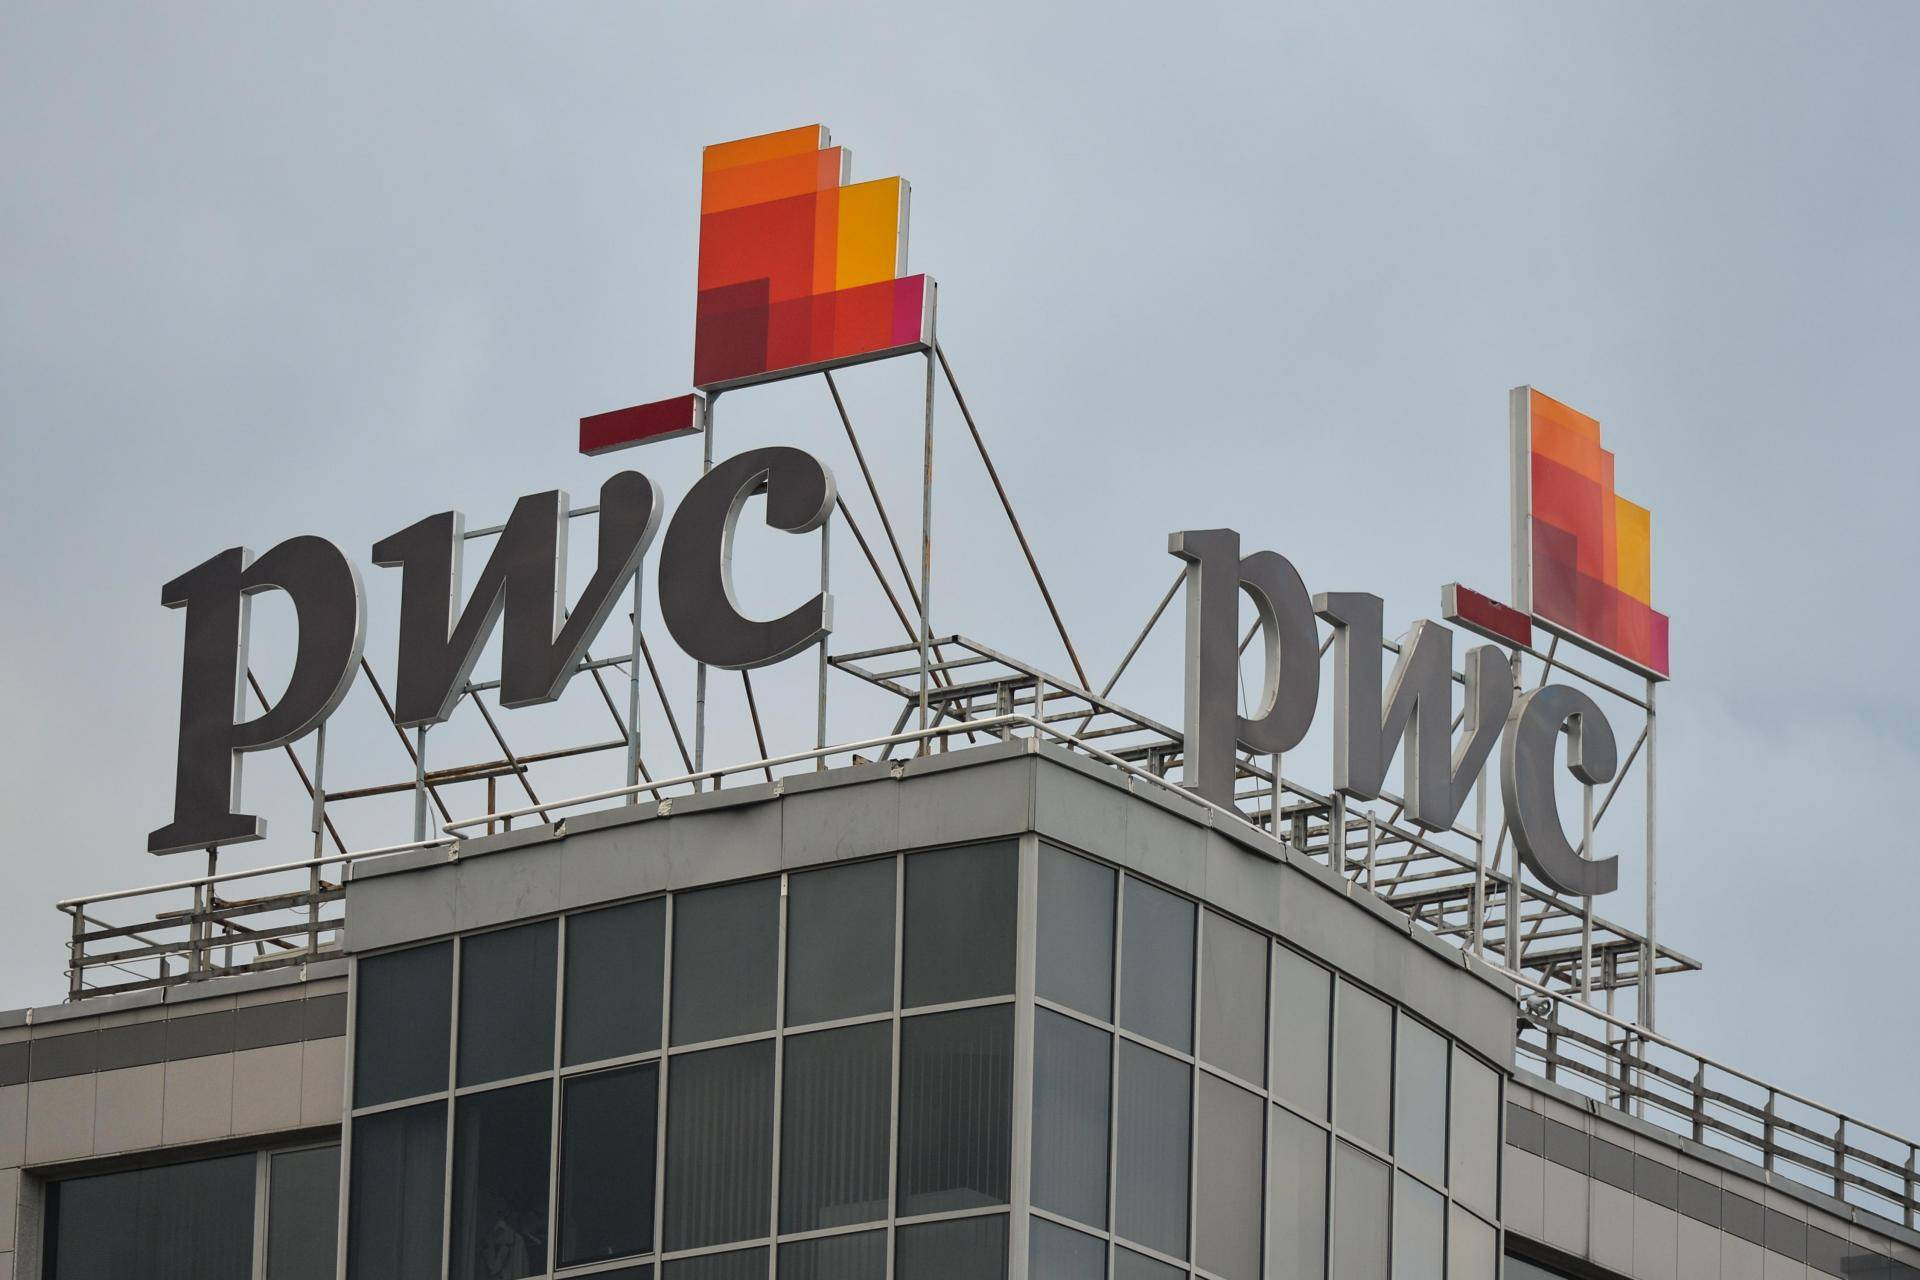 Price Waterhouse Coopers - AFP File